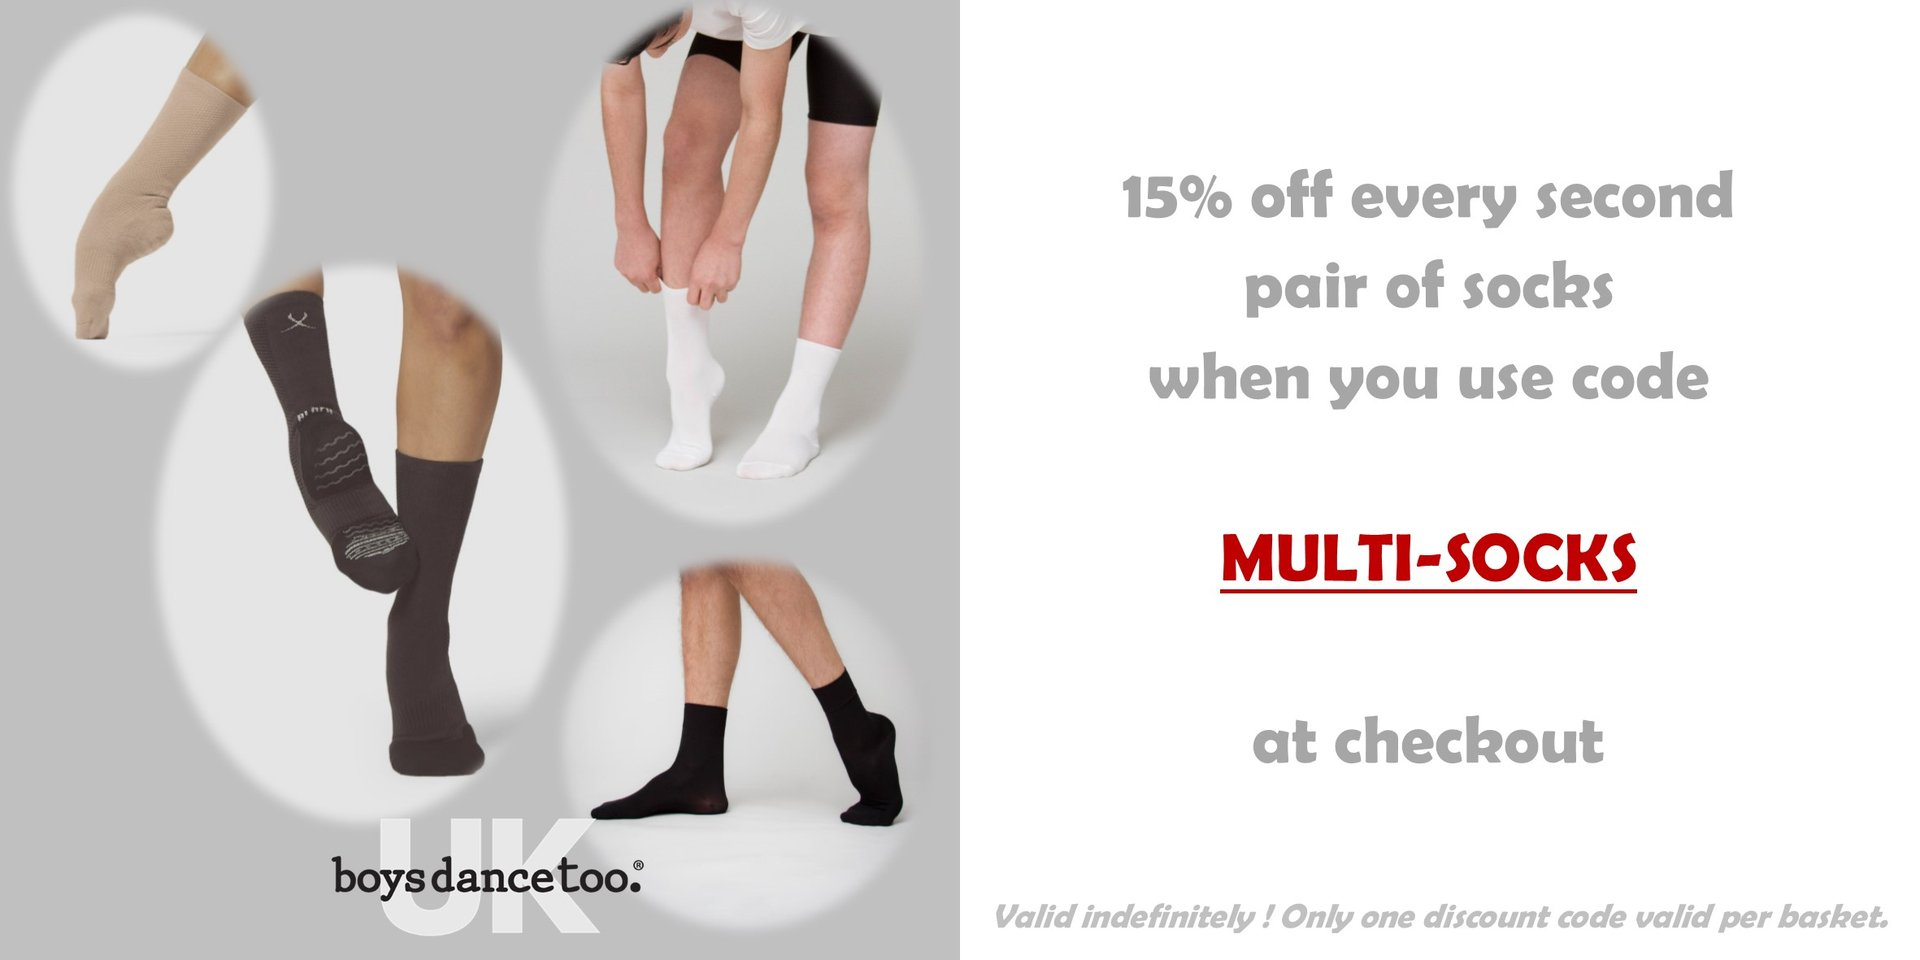 boysdancetooUK